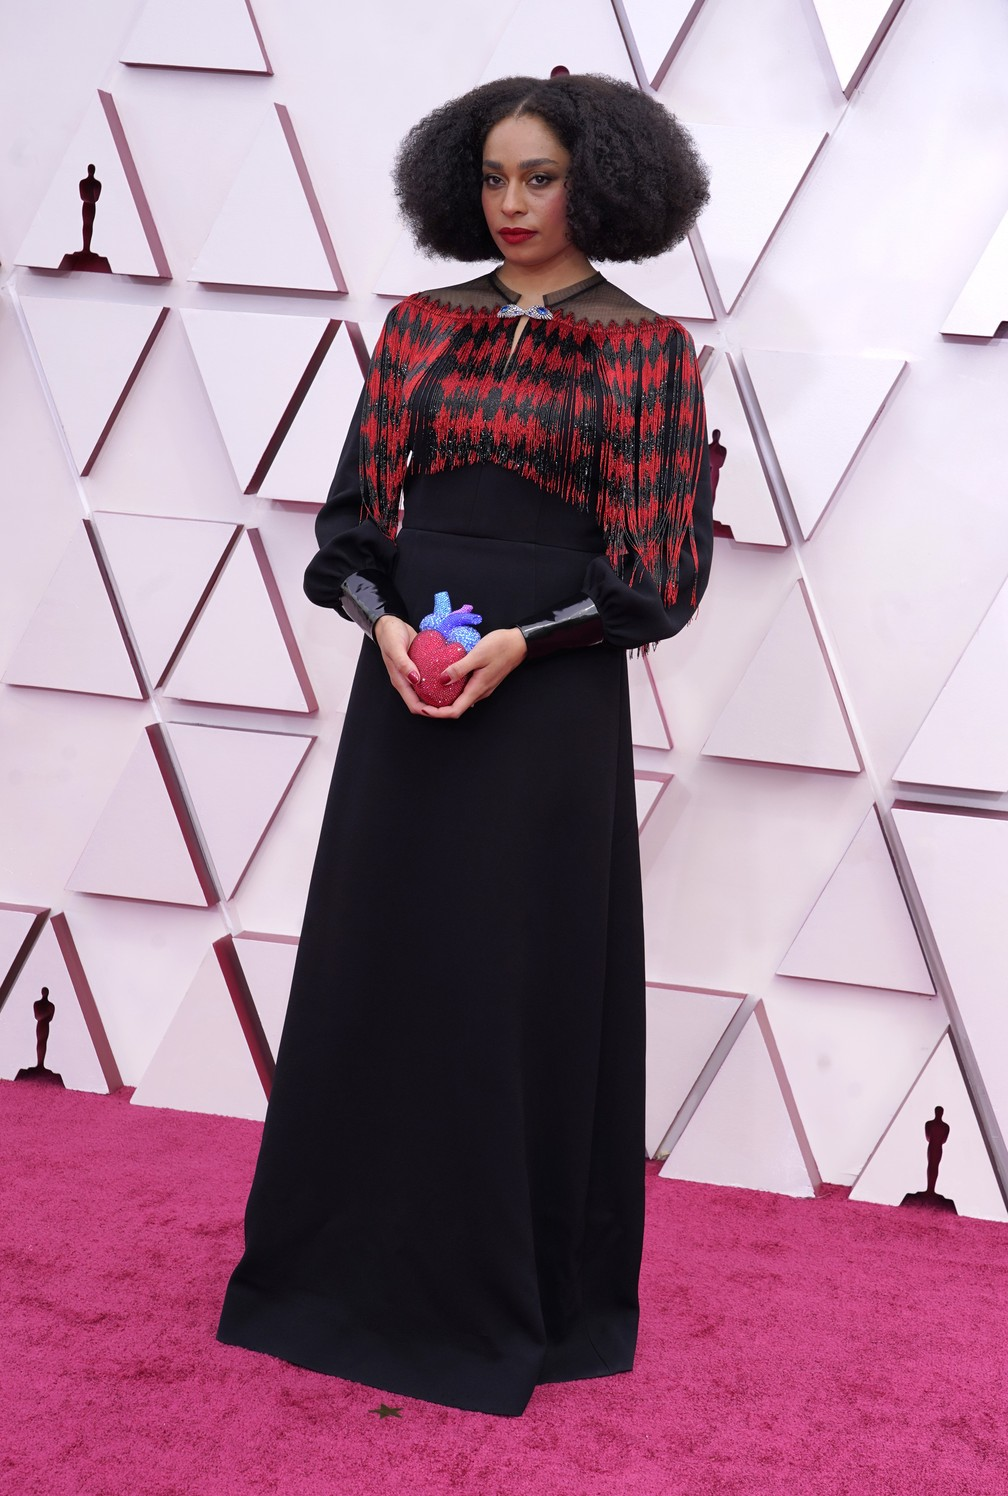 Celeste Waite no Oscar 2021 — Foto: AP Photo/Chris Pizzello